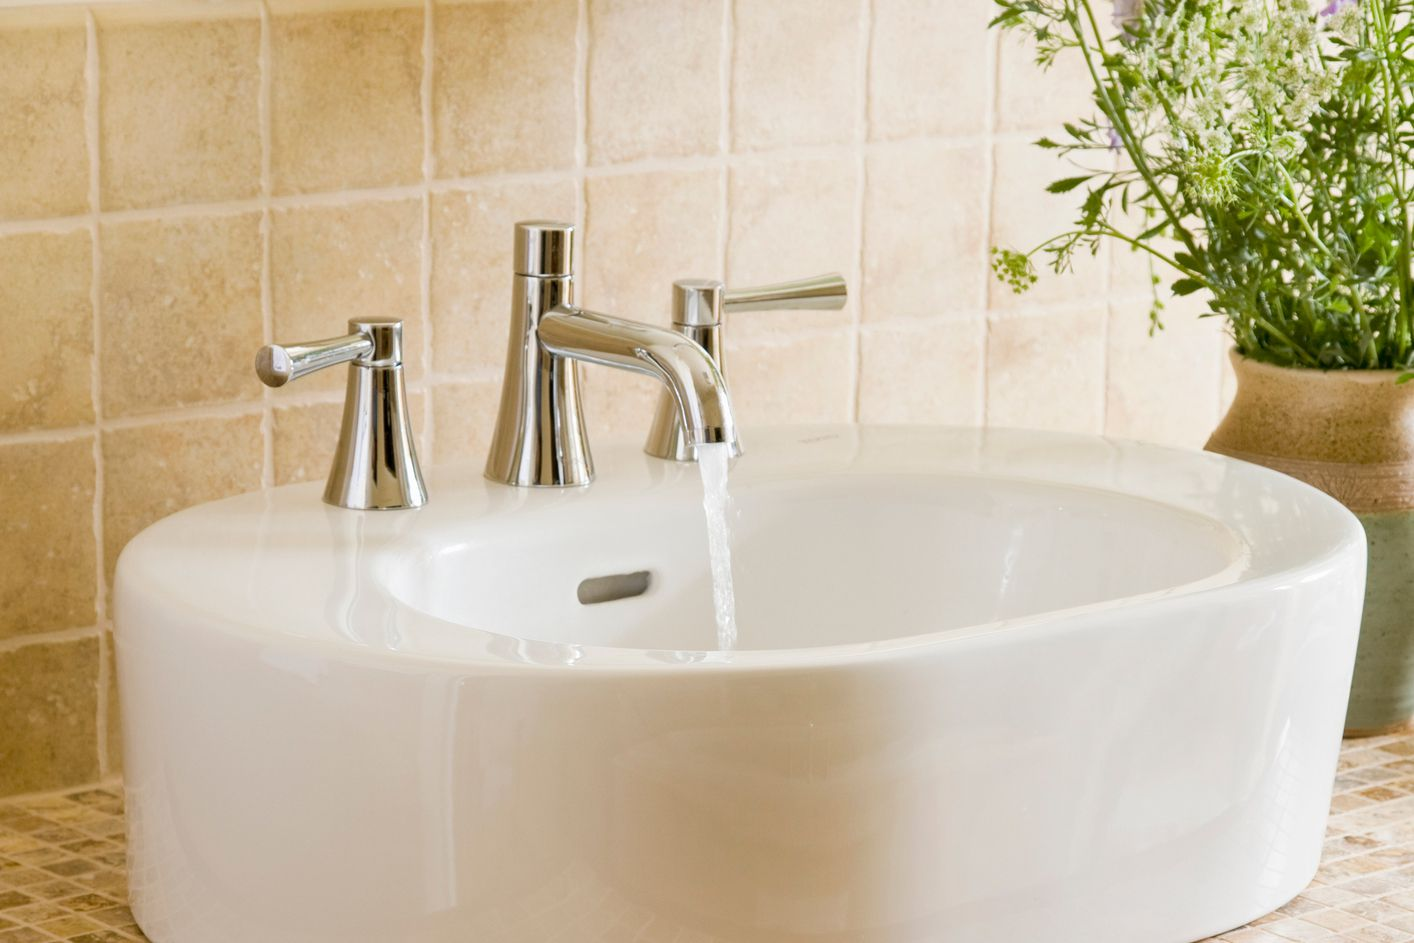 How To Install A Two Handle Aquasource Bathroom Faucet